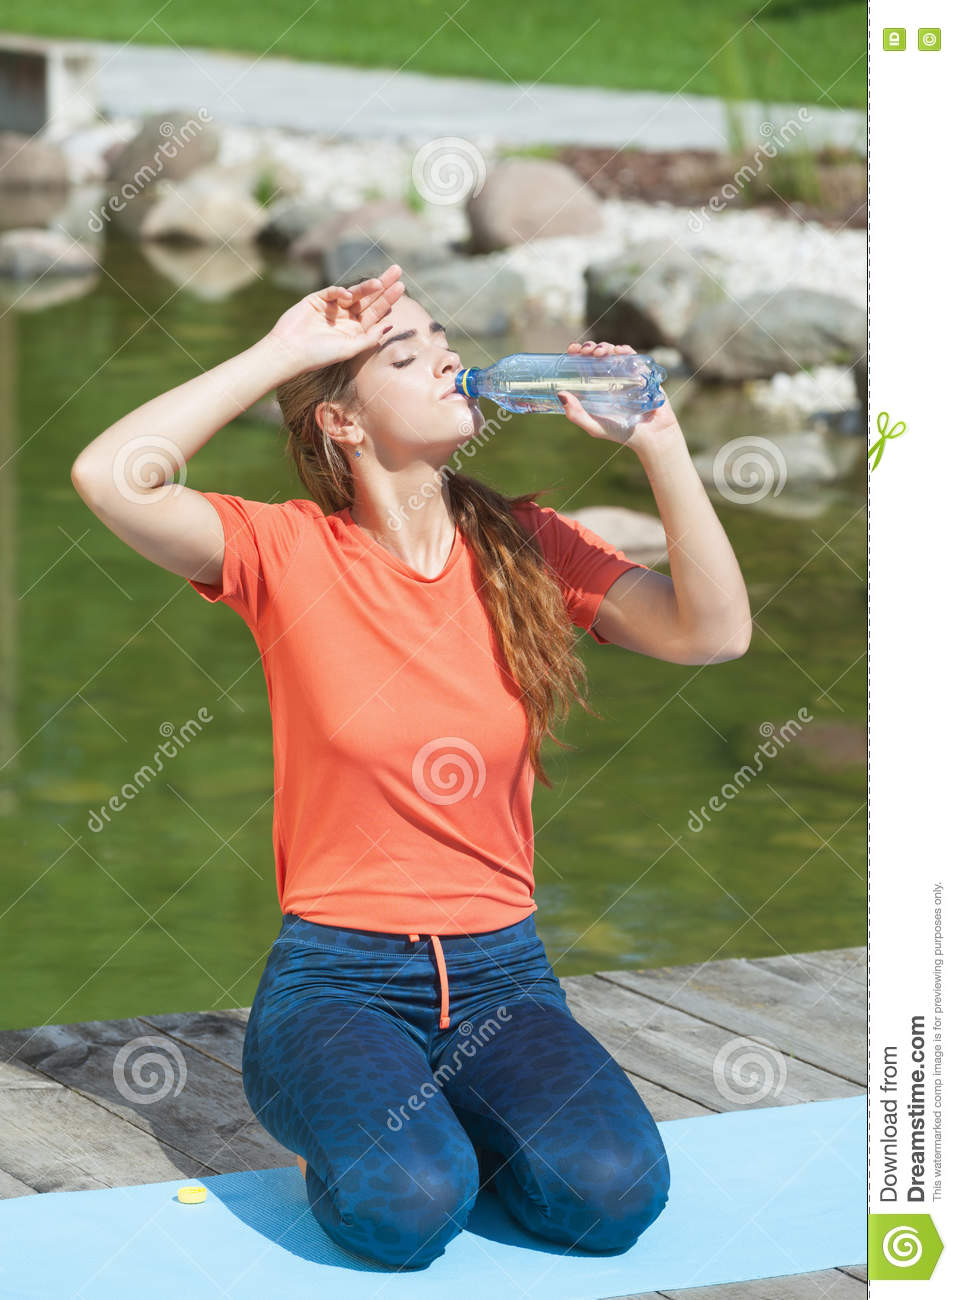 Download Thirsty after workout stock photo. Image of park, athlete - 77040348